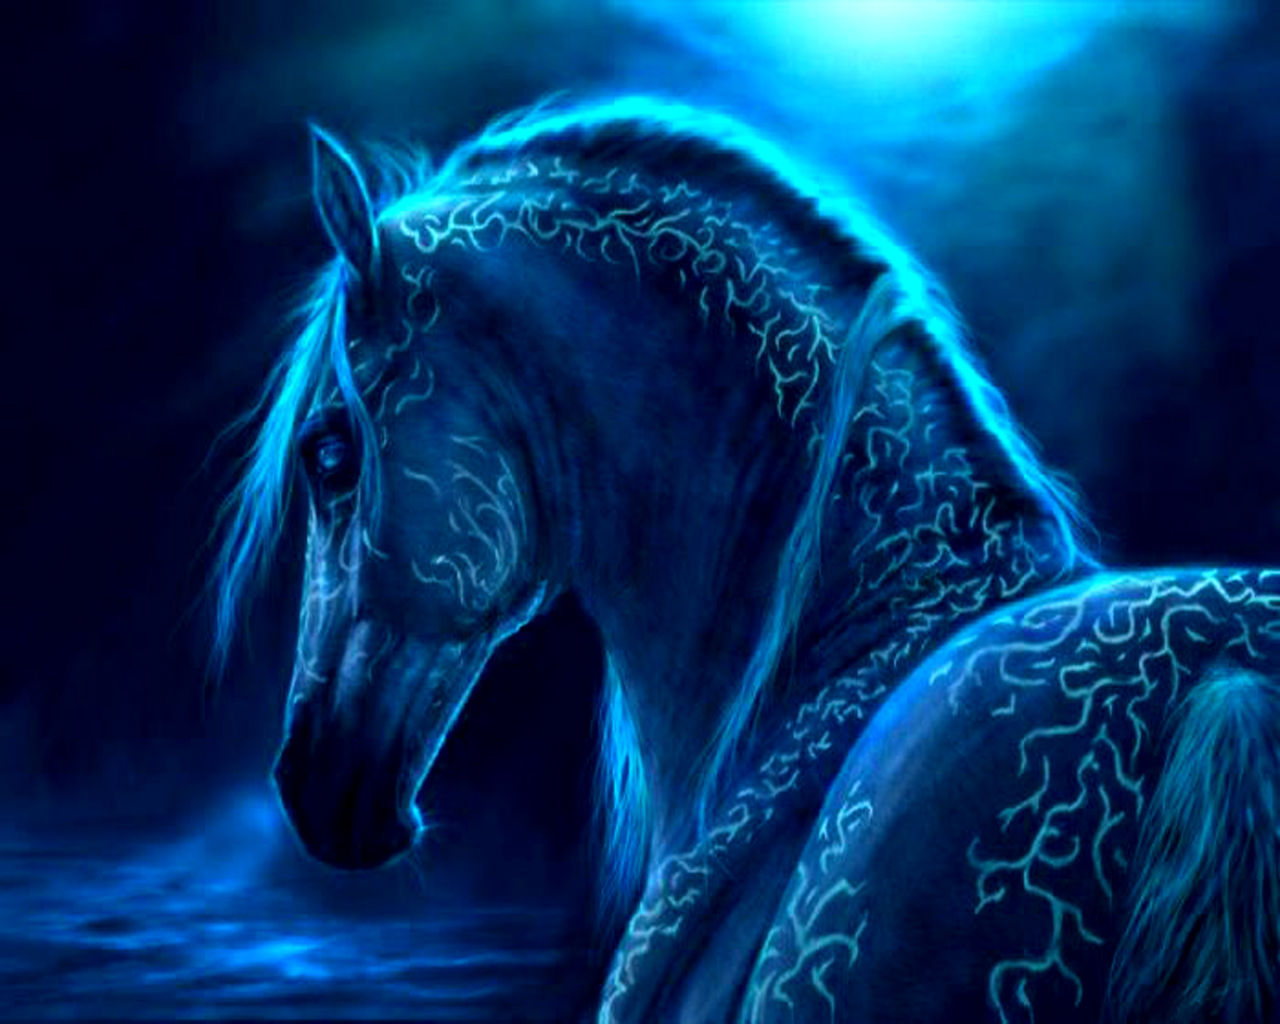 Horse Wallpapers, HQFX Photo